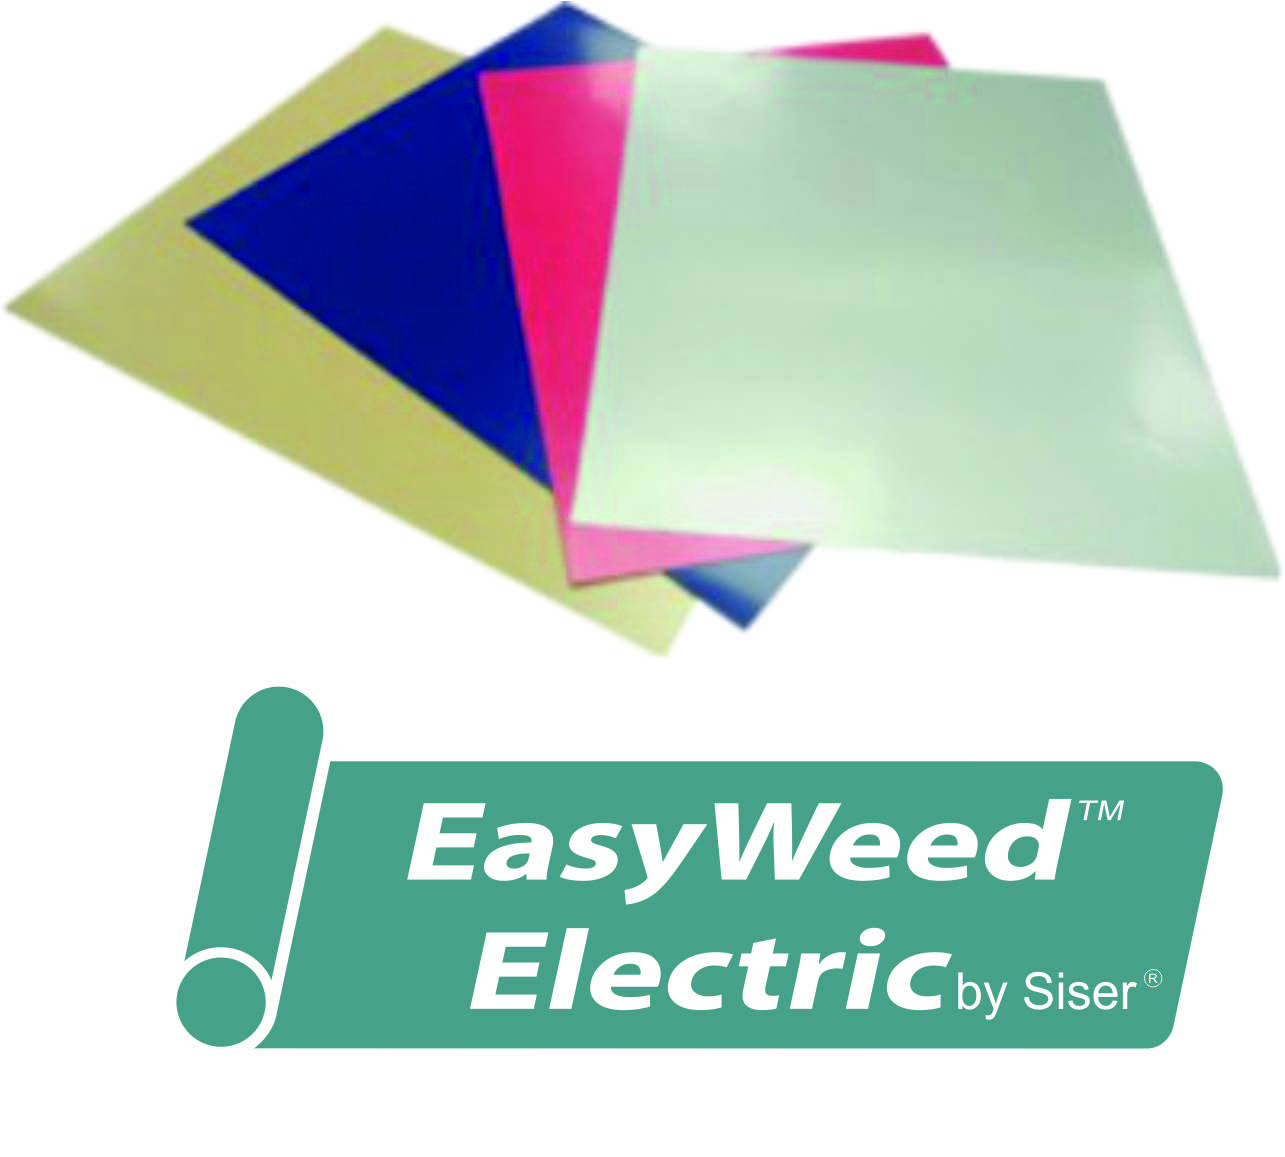 Siser EasyWeed Electric By the Sheet